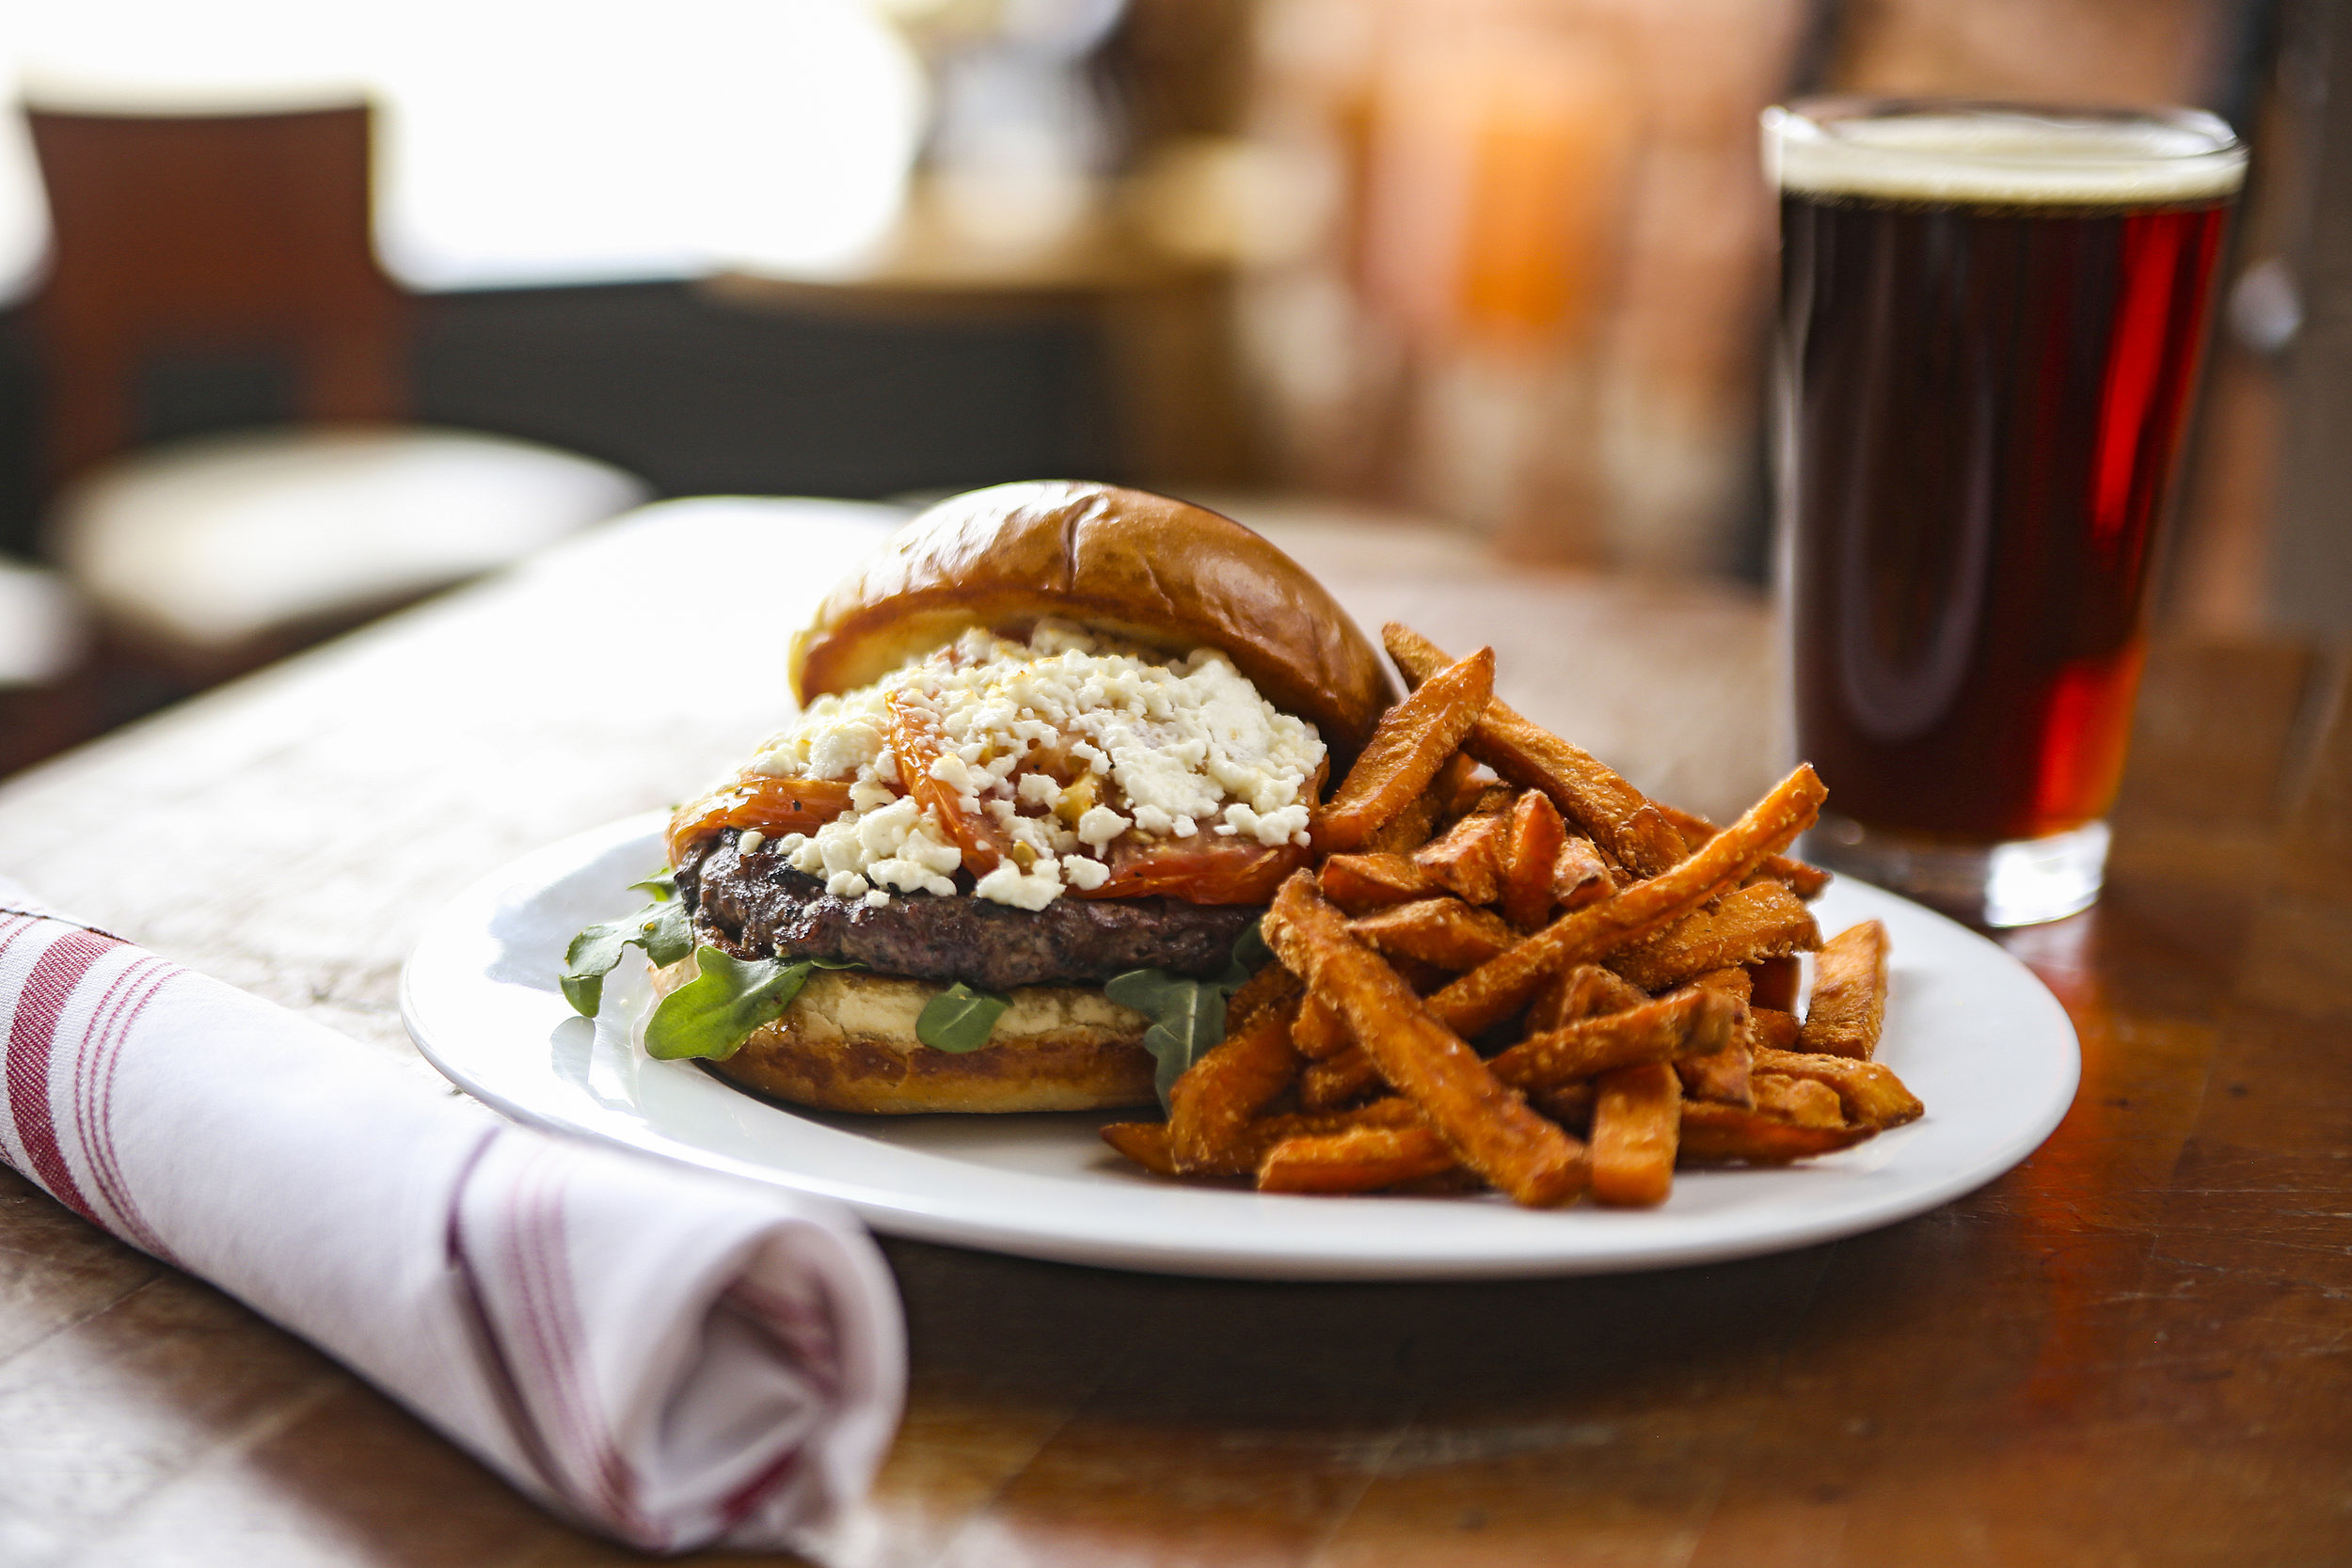 Collaboration Burger with Sweet Potato Fries